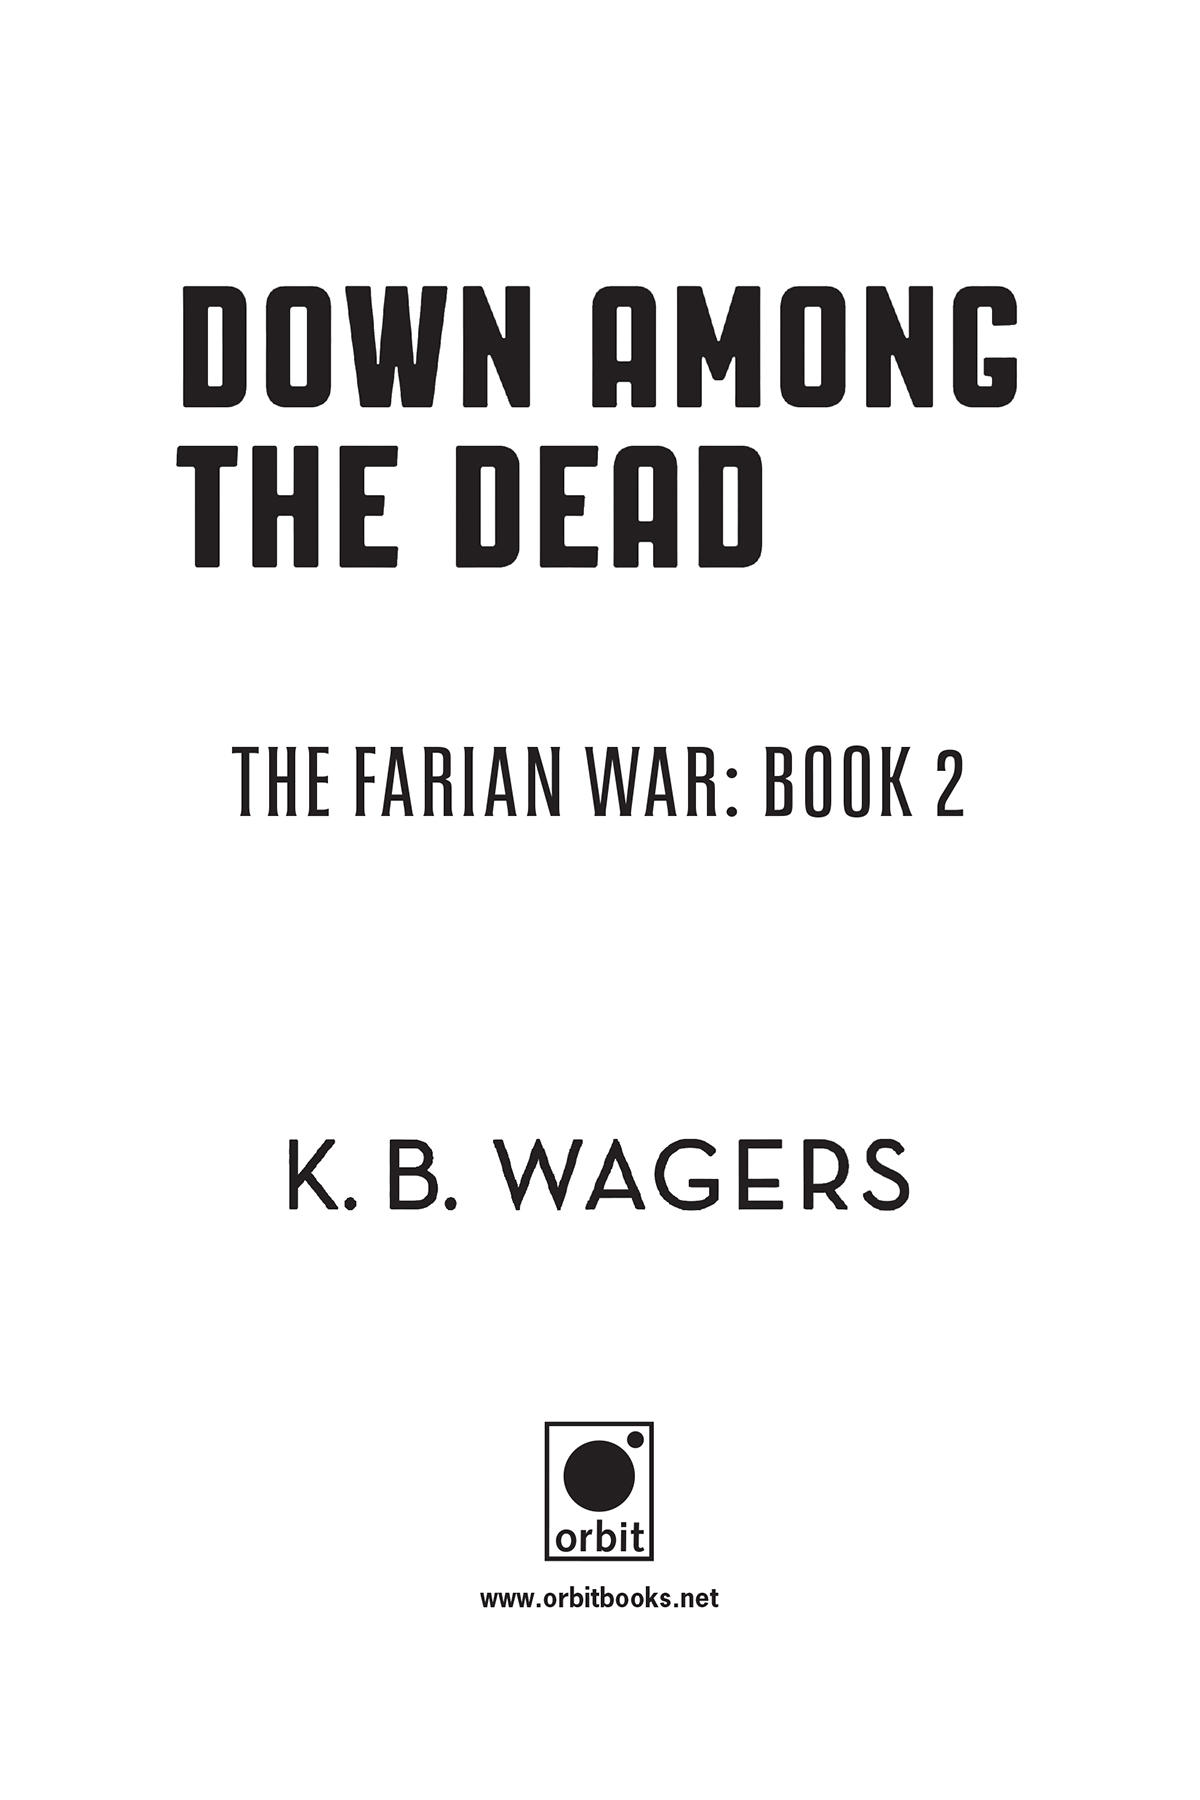 Down Among the Dead